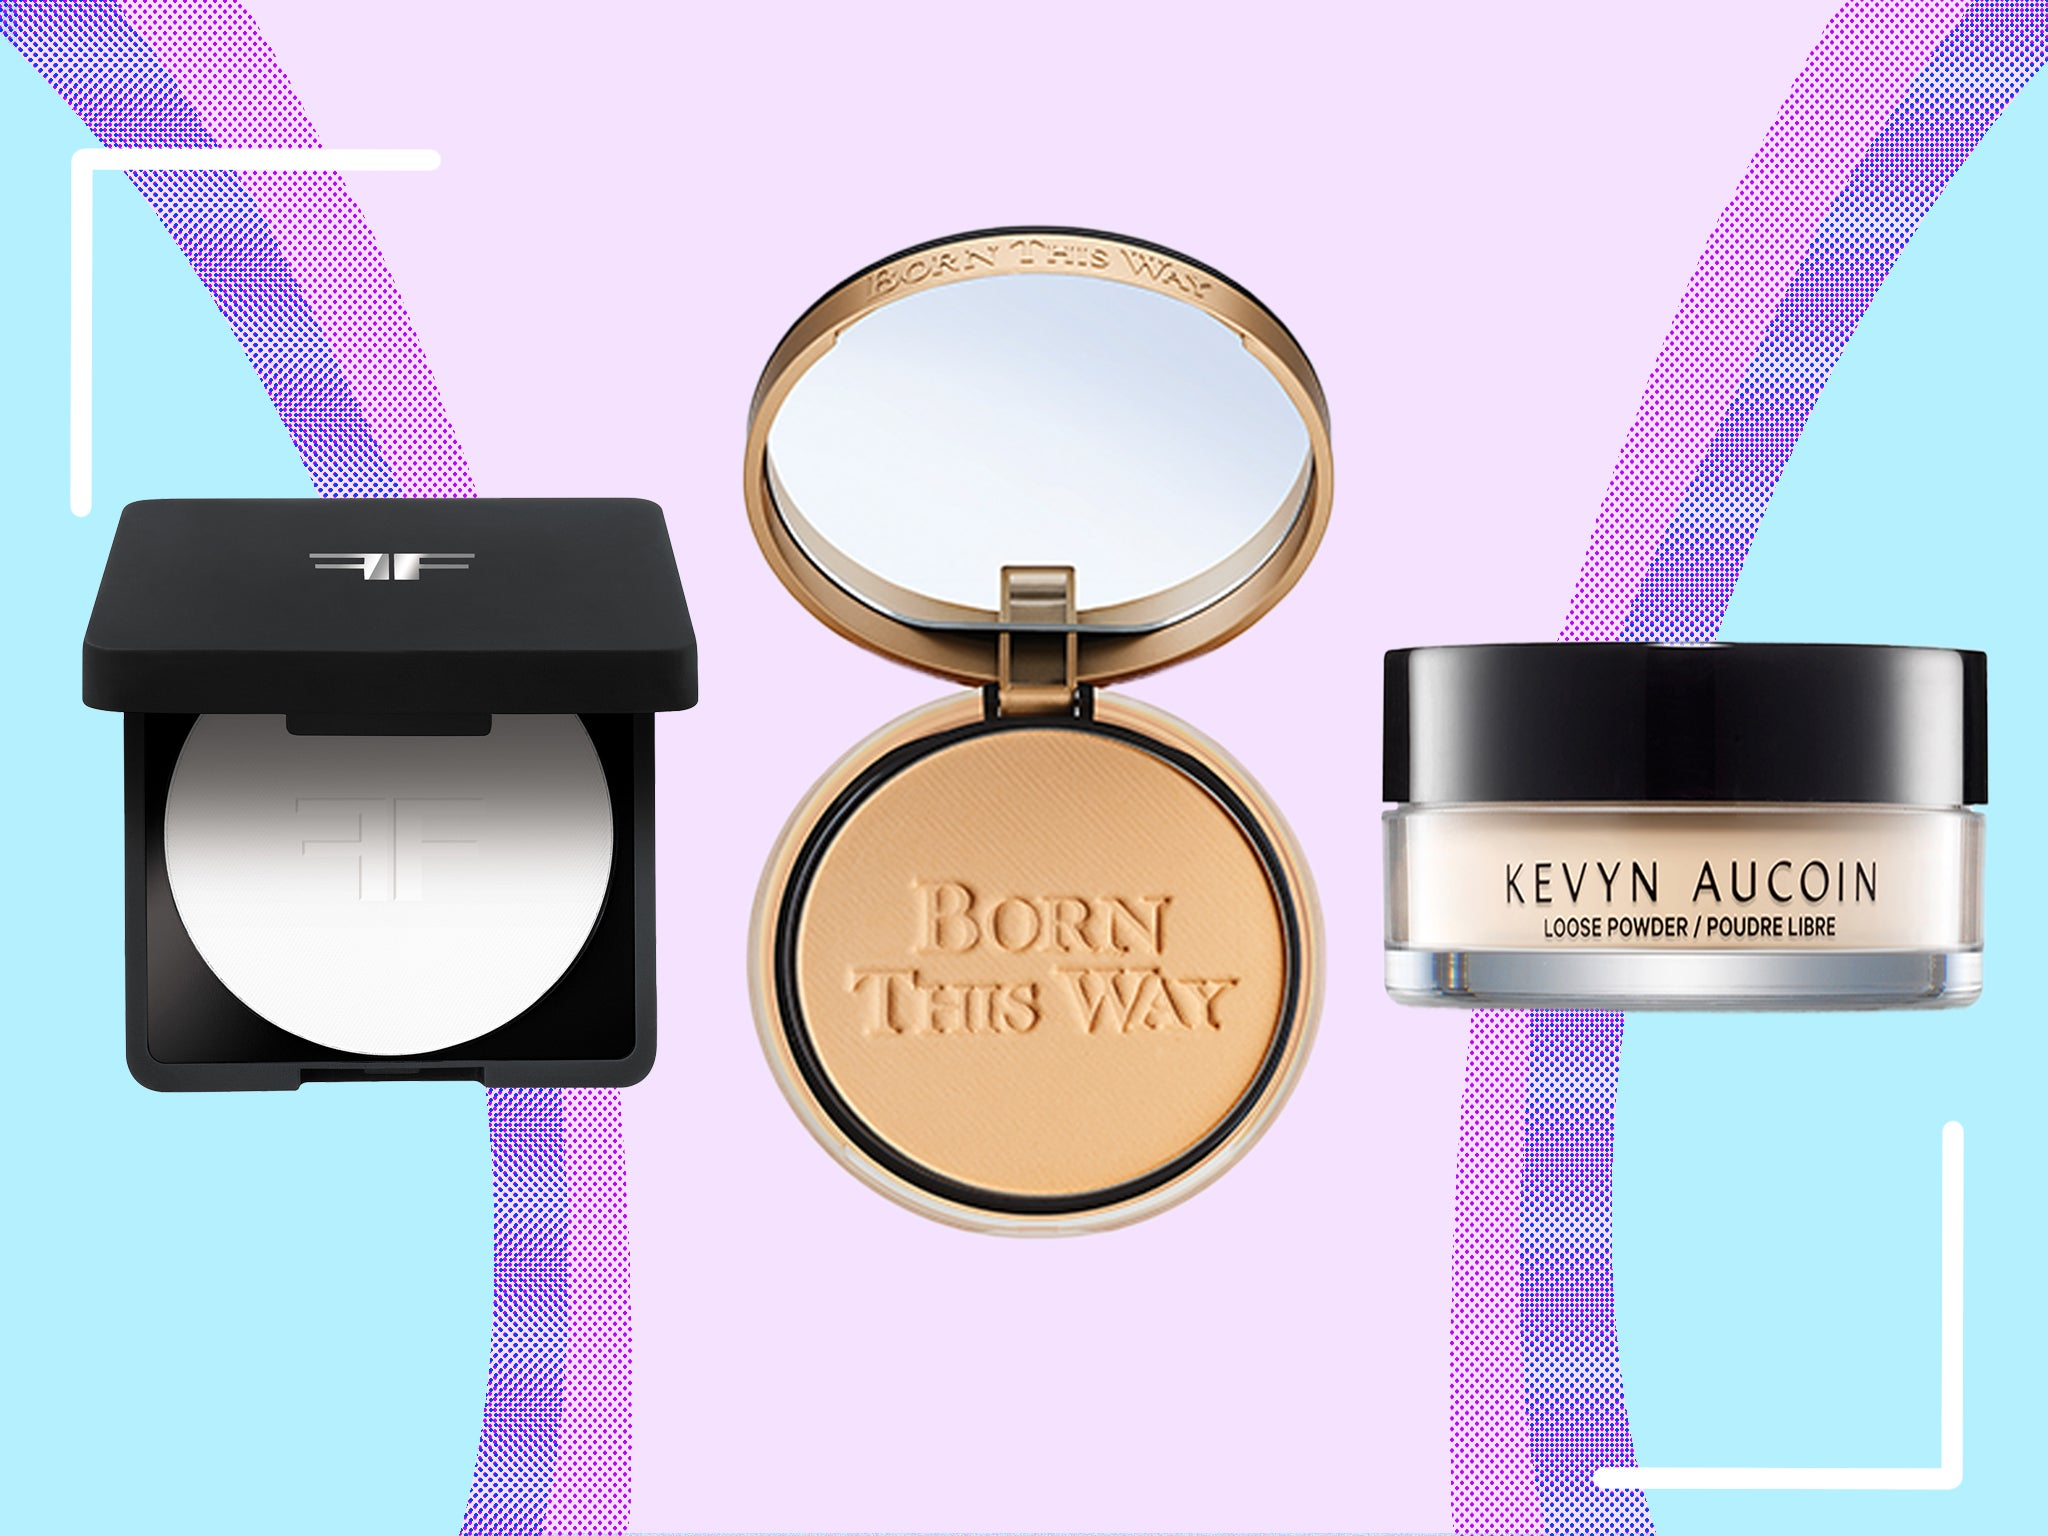 Best Face Powder For Dry Skin 2020 Compact Designs And Loose Formula The Independent